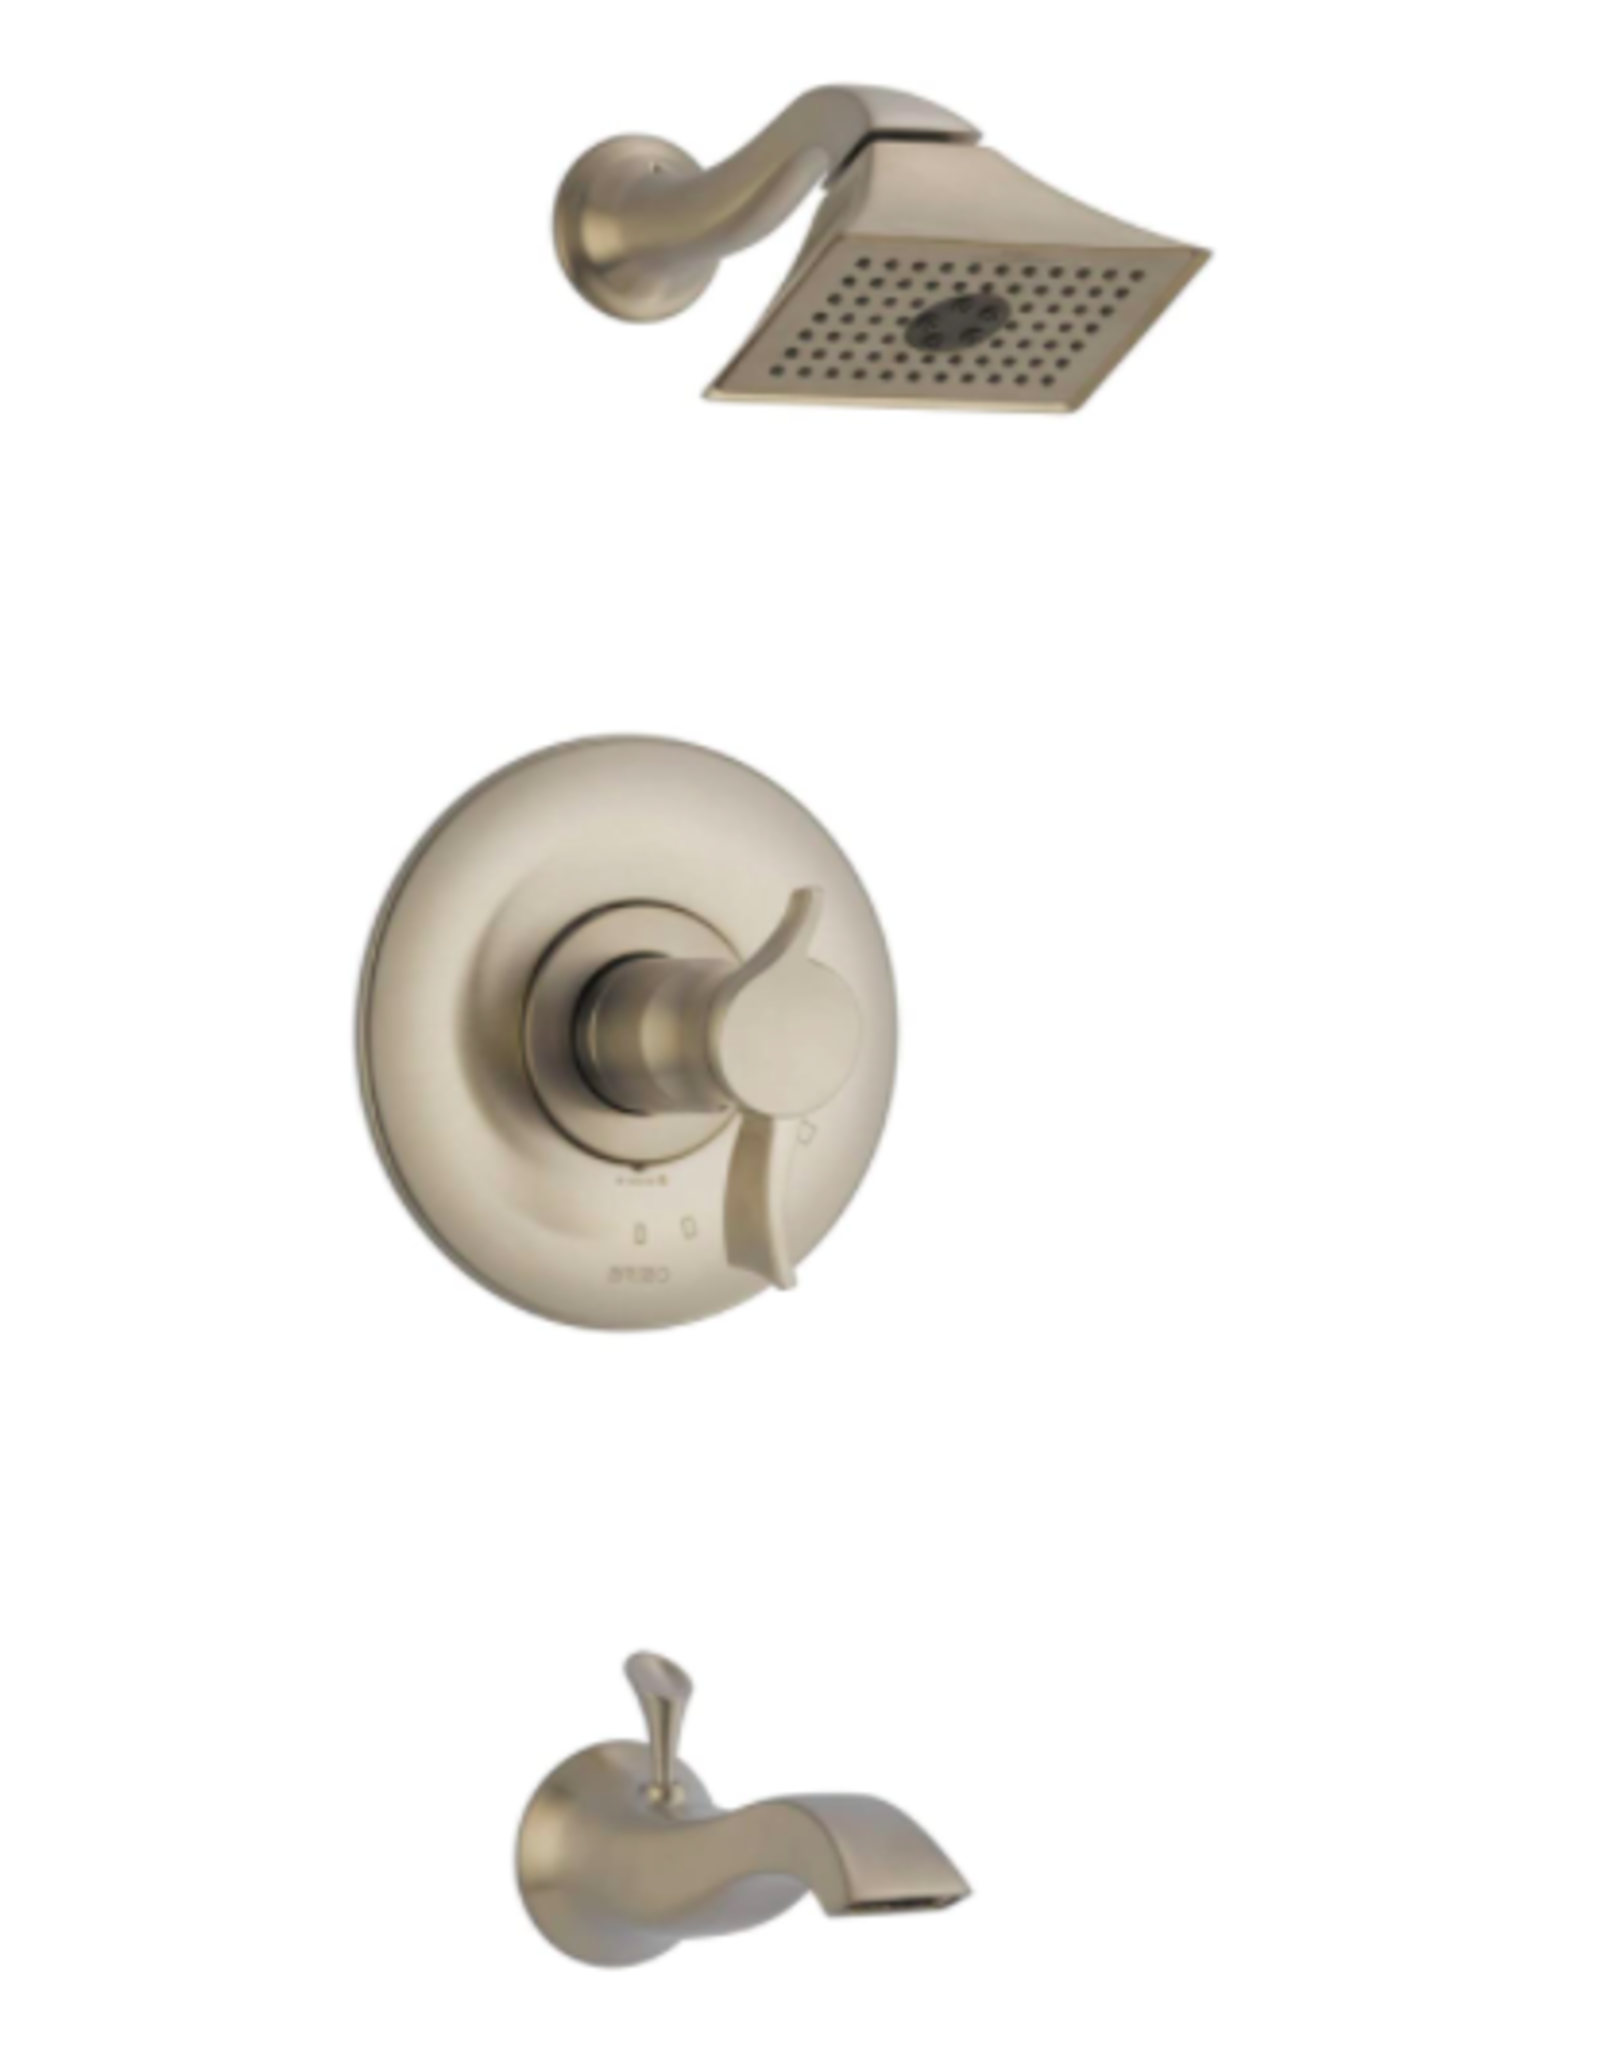 Brizo BRIZO RSVP - BRUSHED NICKEL TEMPASSURE THERMOSTATIC TUB/SHOWER TRIM